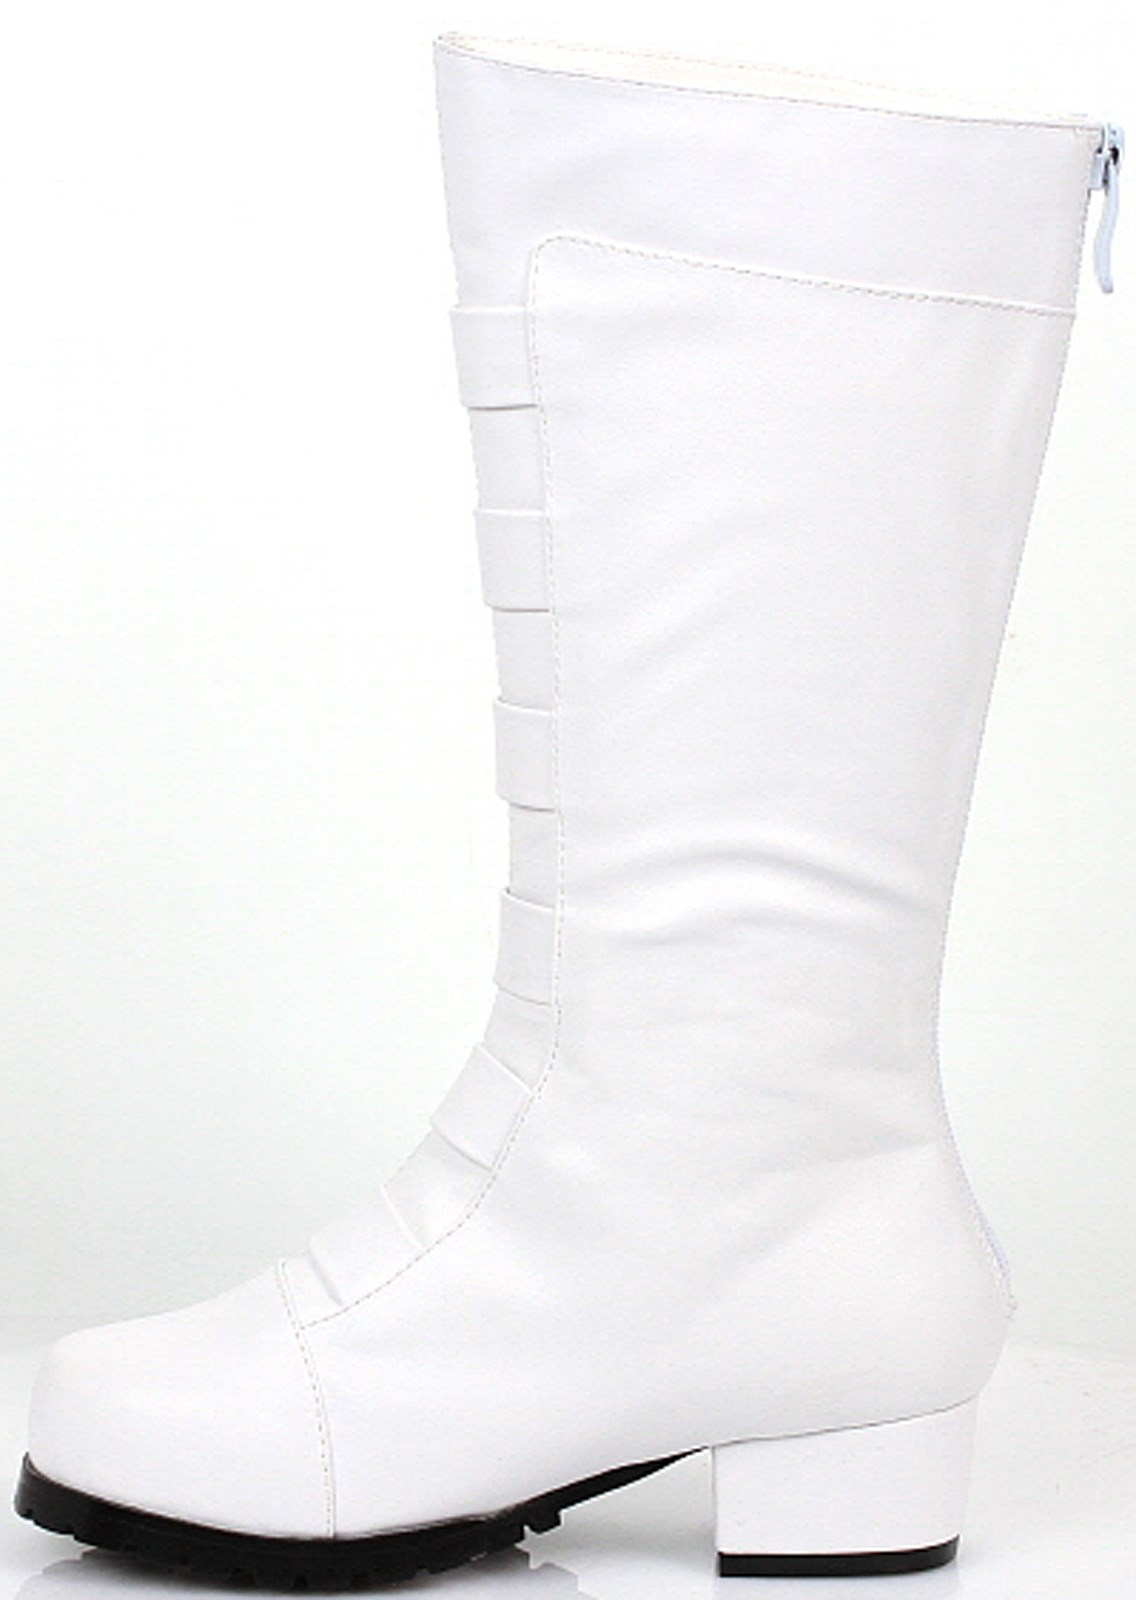 White Boots For Boys